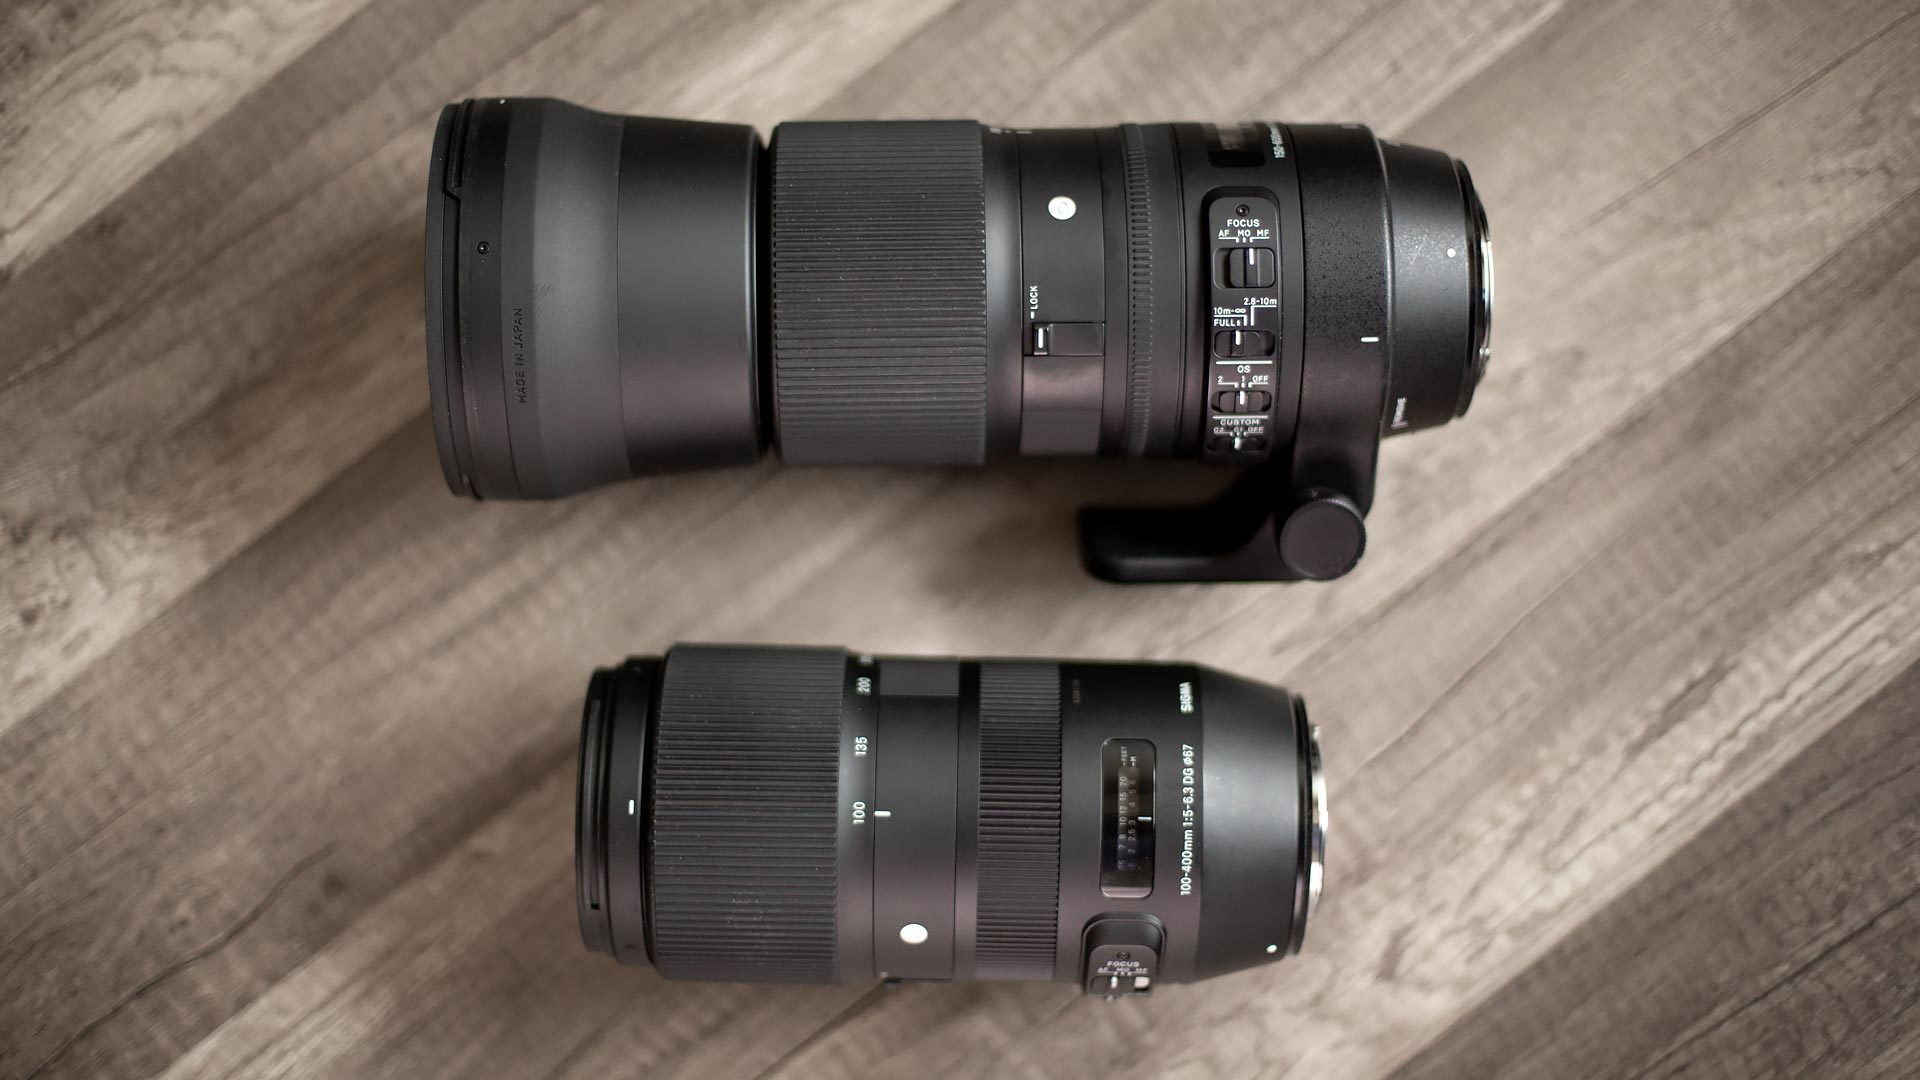 Sigma 100-400mm or 150-600mm: Which Should You Buy? – Light And Matter